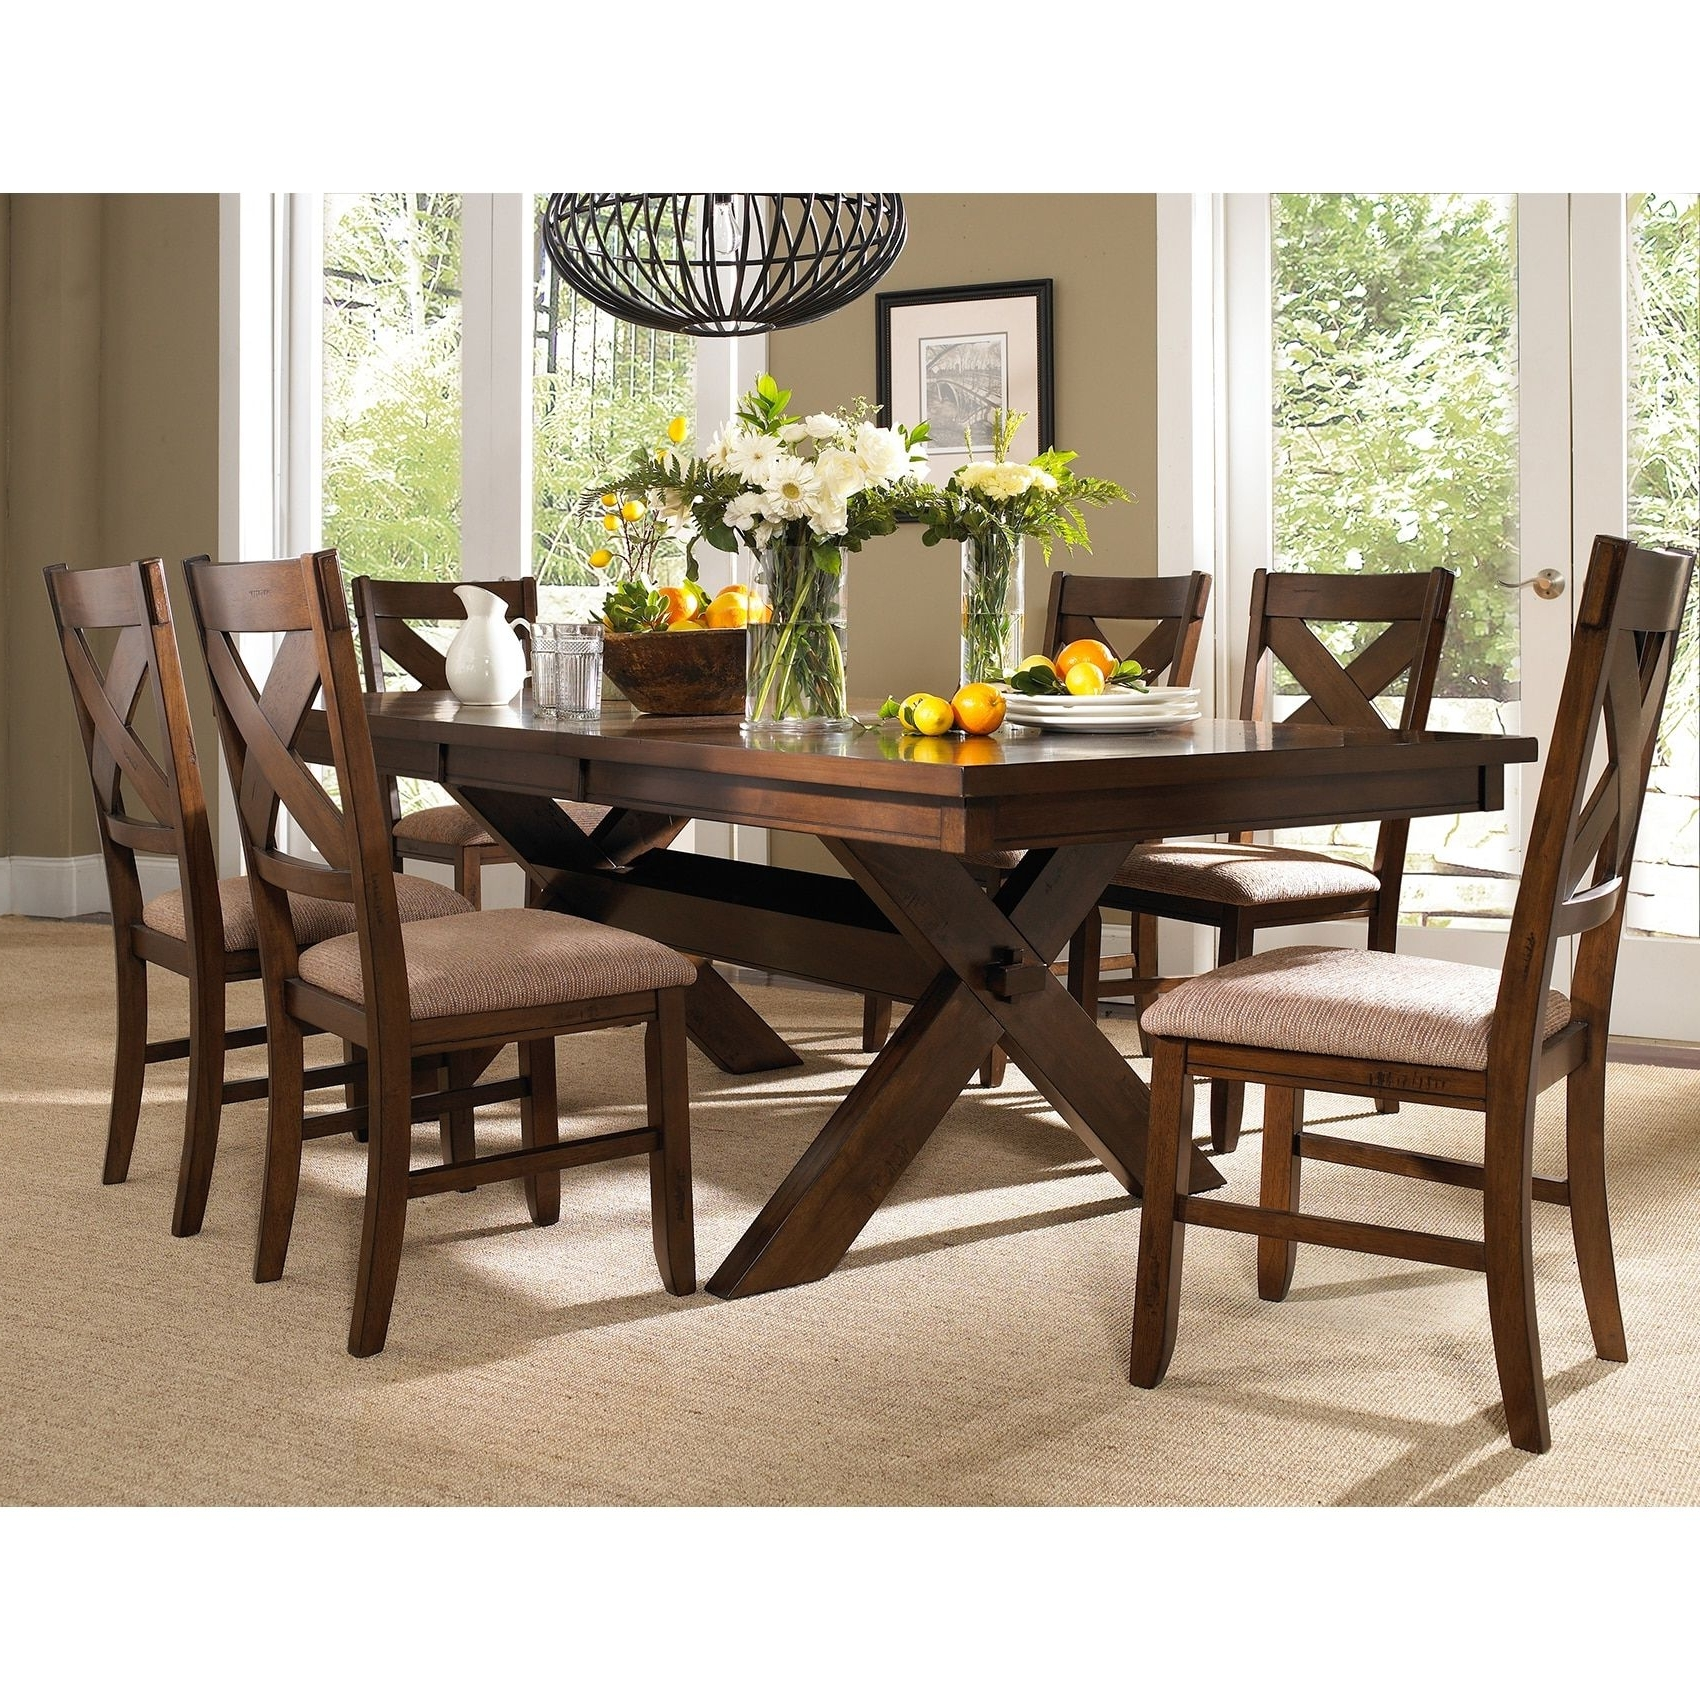 7 Piece Solid Wood Dining Set With Table And 6 Chairs (Dark Hazelnut In Trendy Dark Wood Dining Tables And 6 Chairs (Gallery 12 of 25)